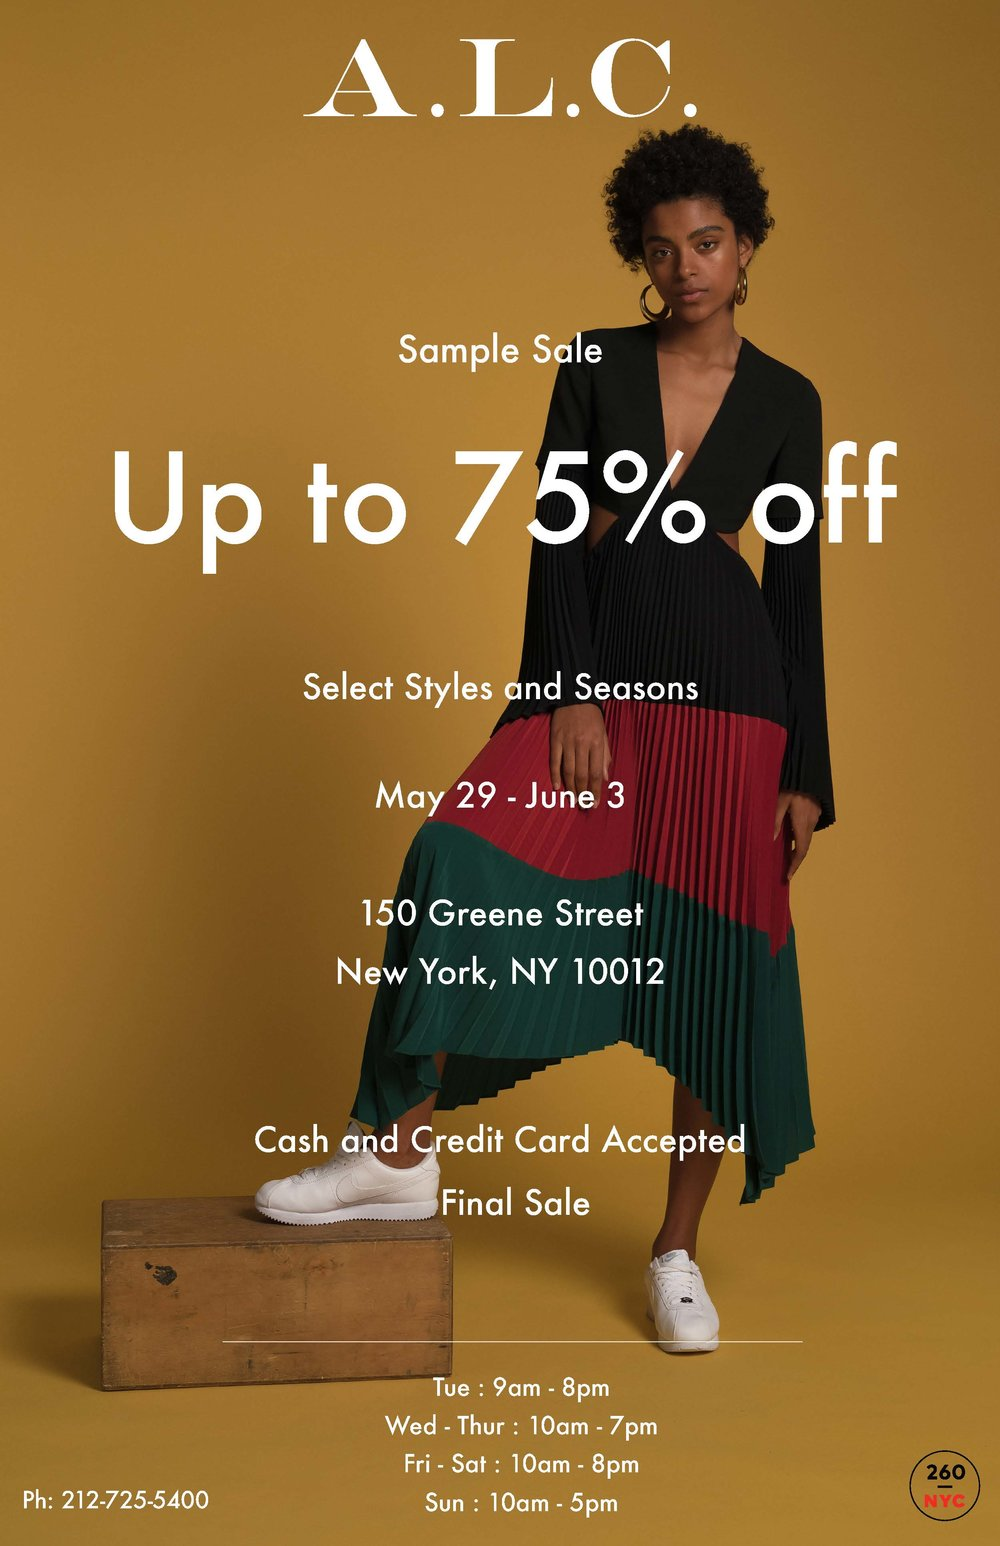 A.L.C. Sample Sale Flyer.jpg